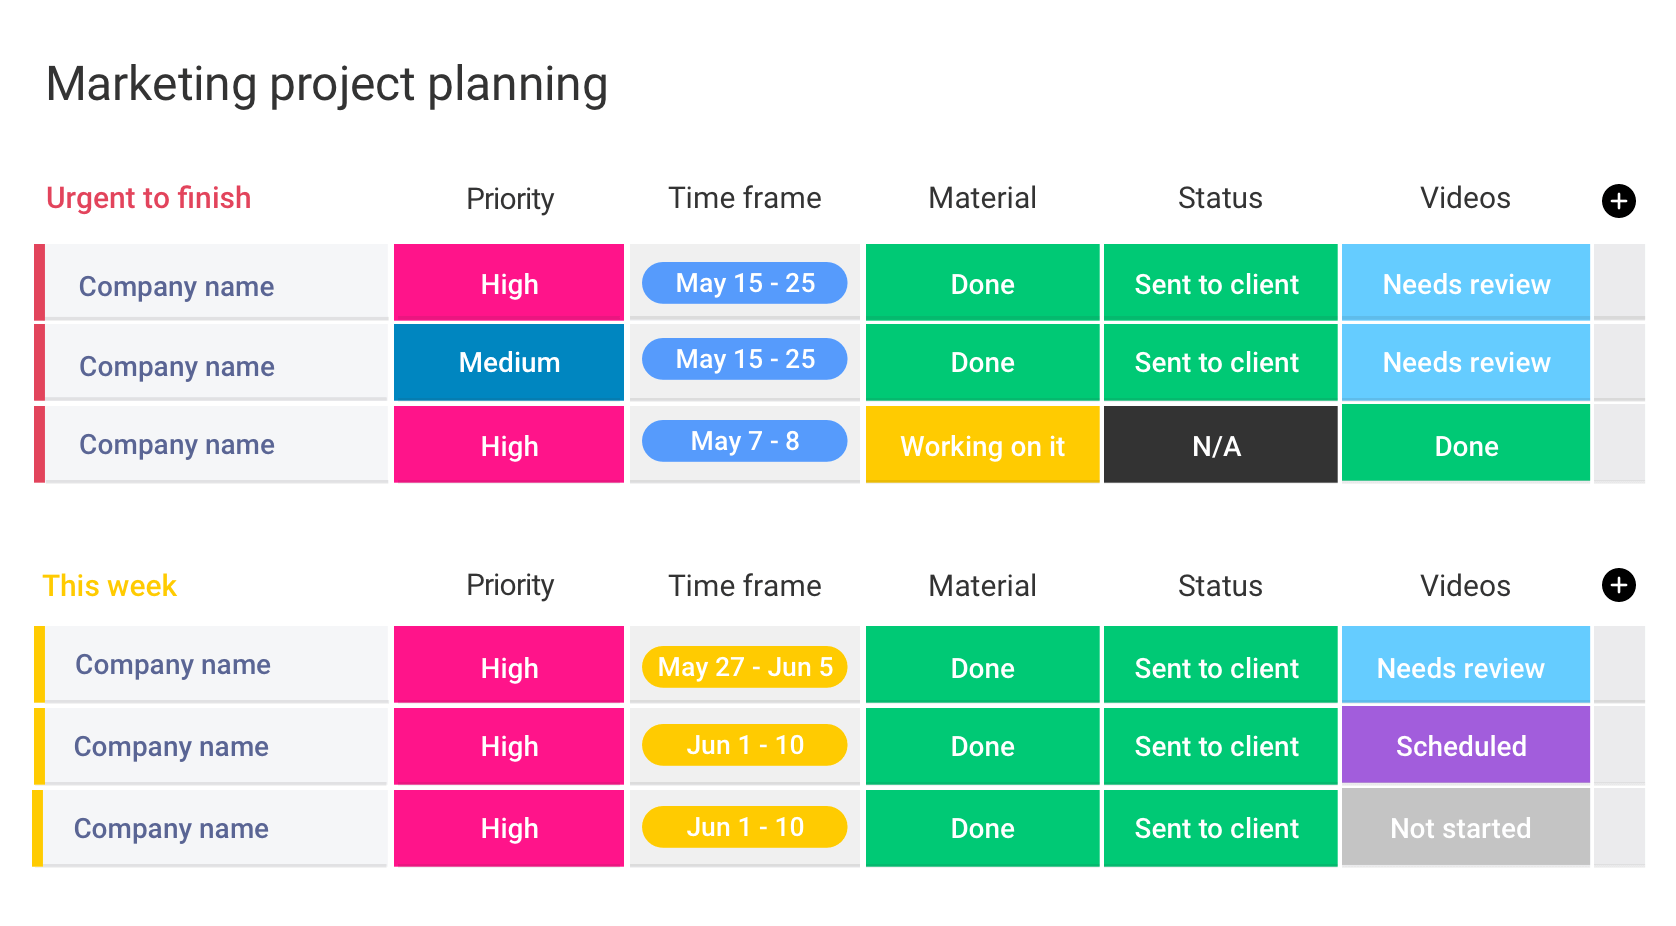 Marketingplanning2x.png